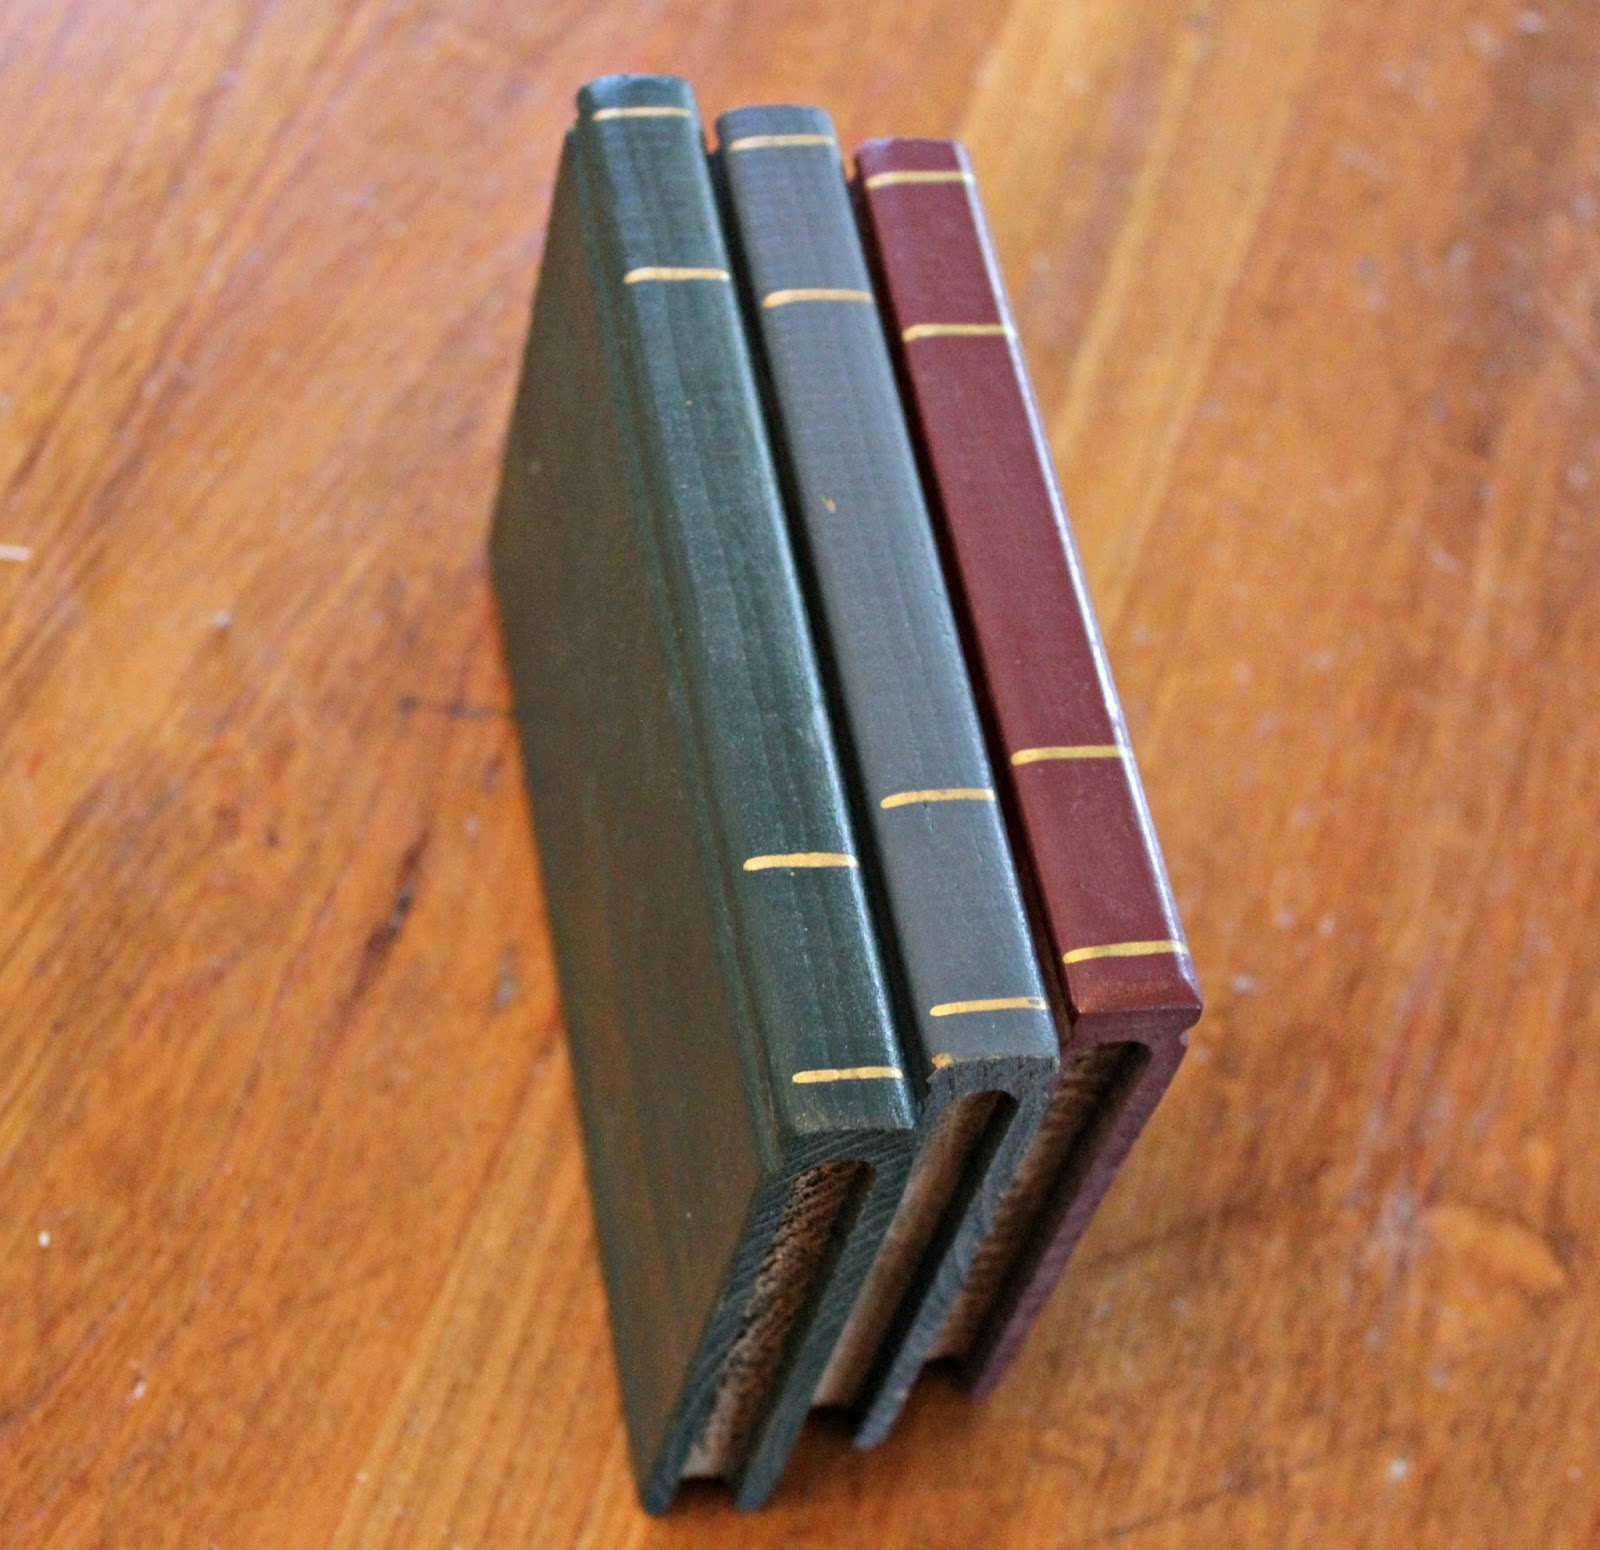 Thrift Shop Upcycled Home Interiors Wooden Books Organized Clutter